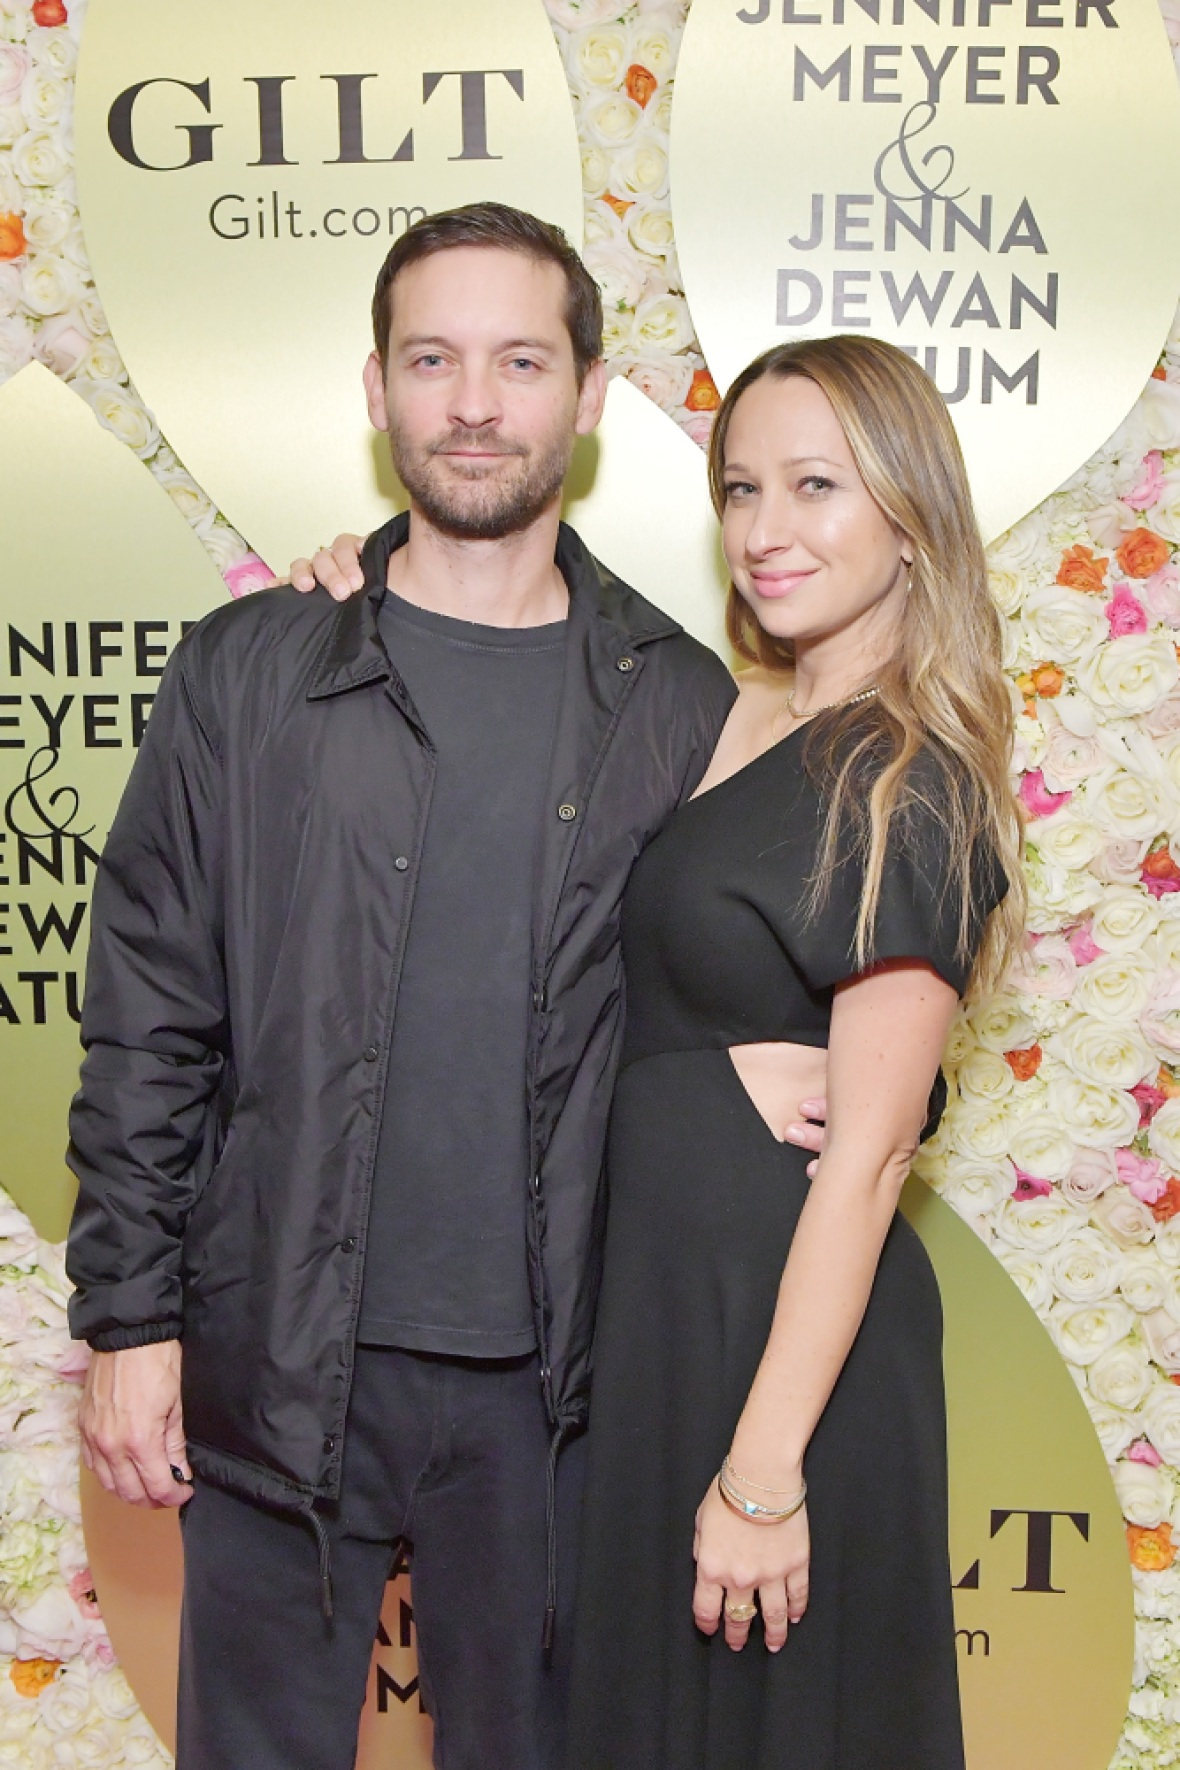 tobey maguire jennifer meyer getty images